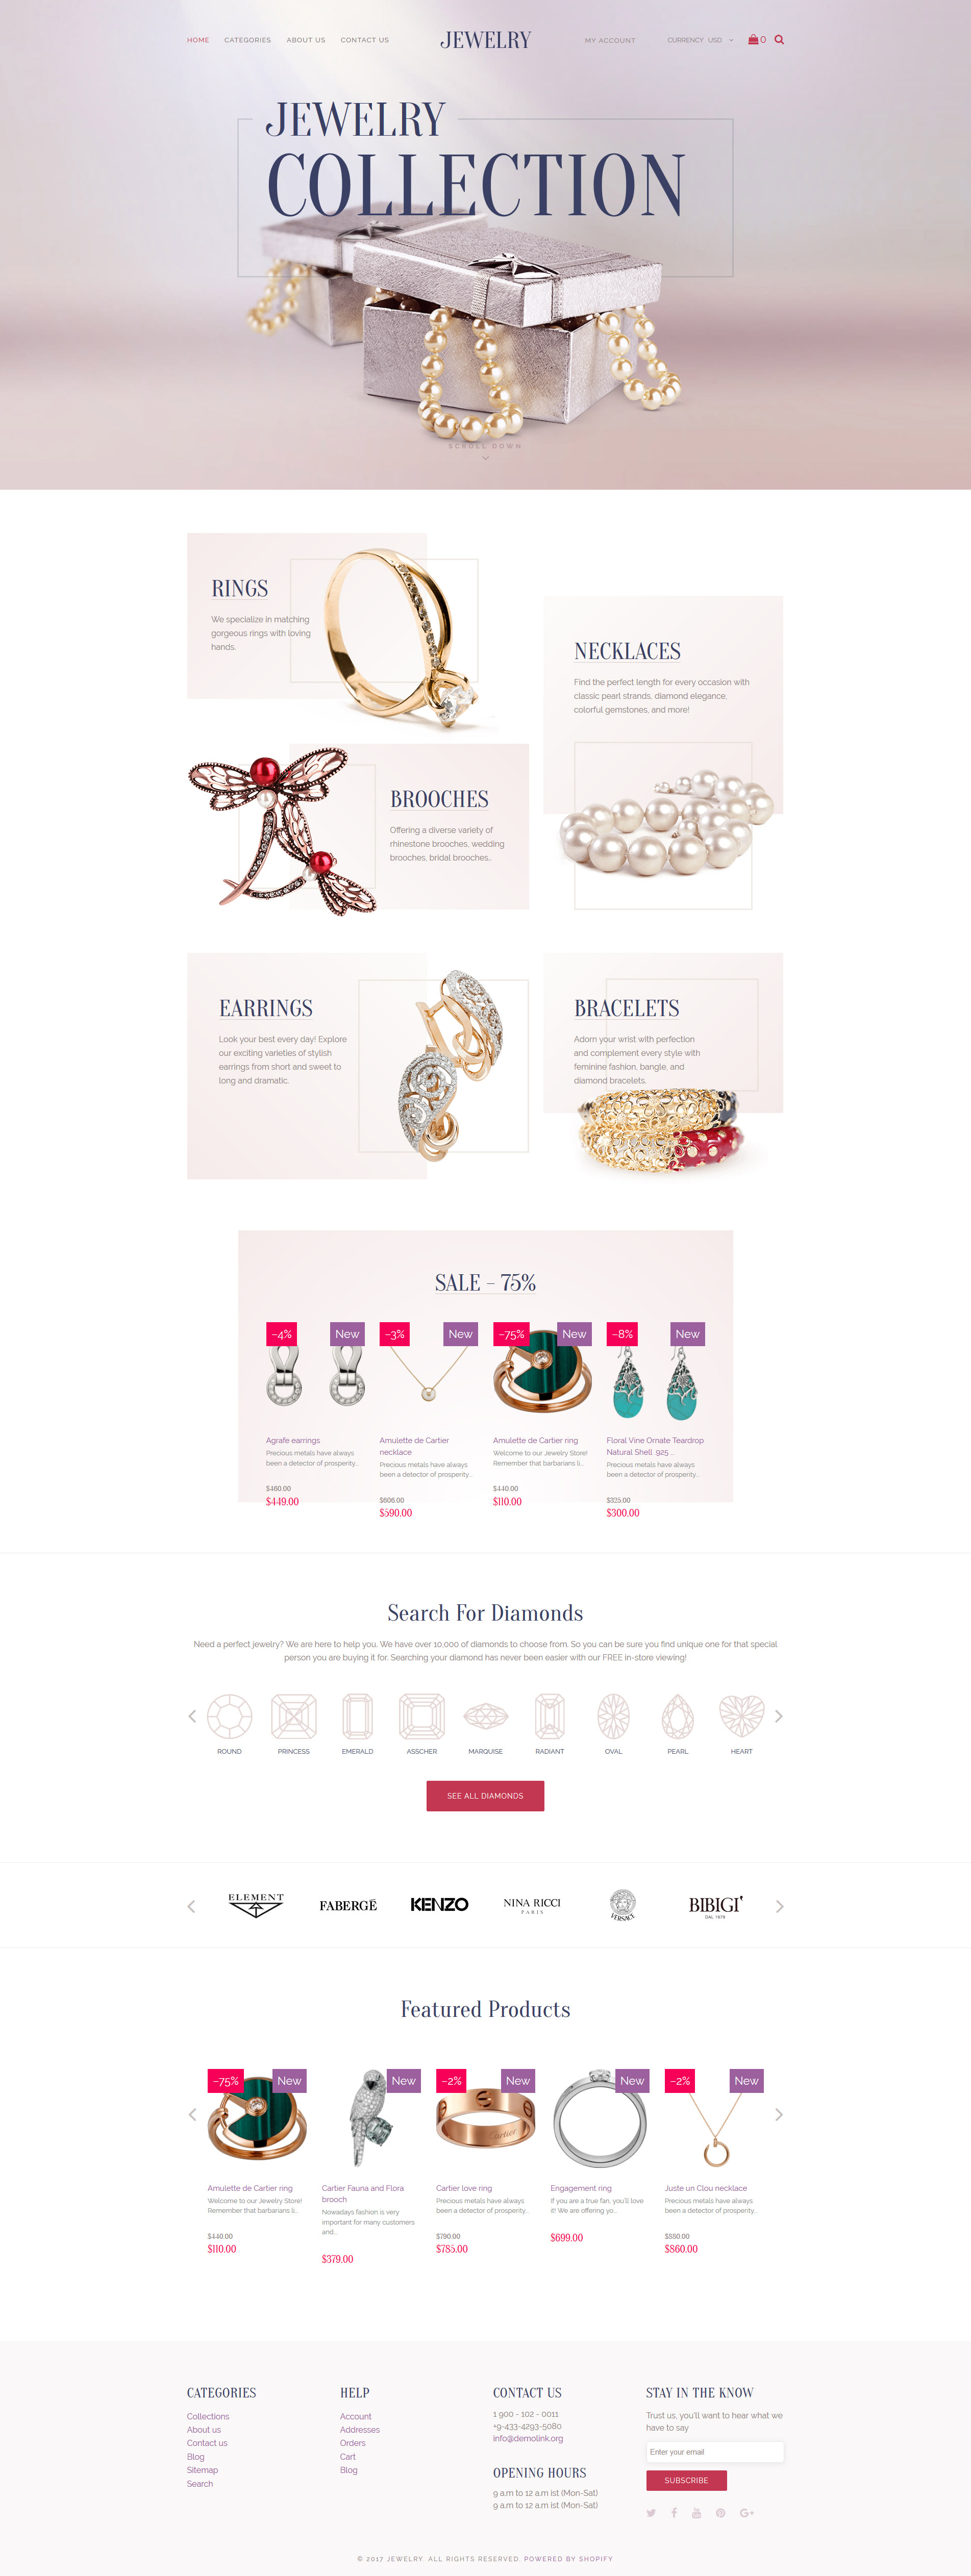 Jewelry - Luxury Collection Shopify Theme - screenshot